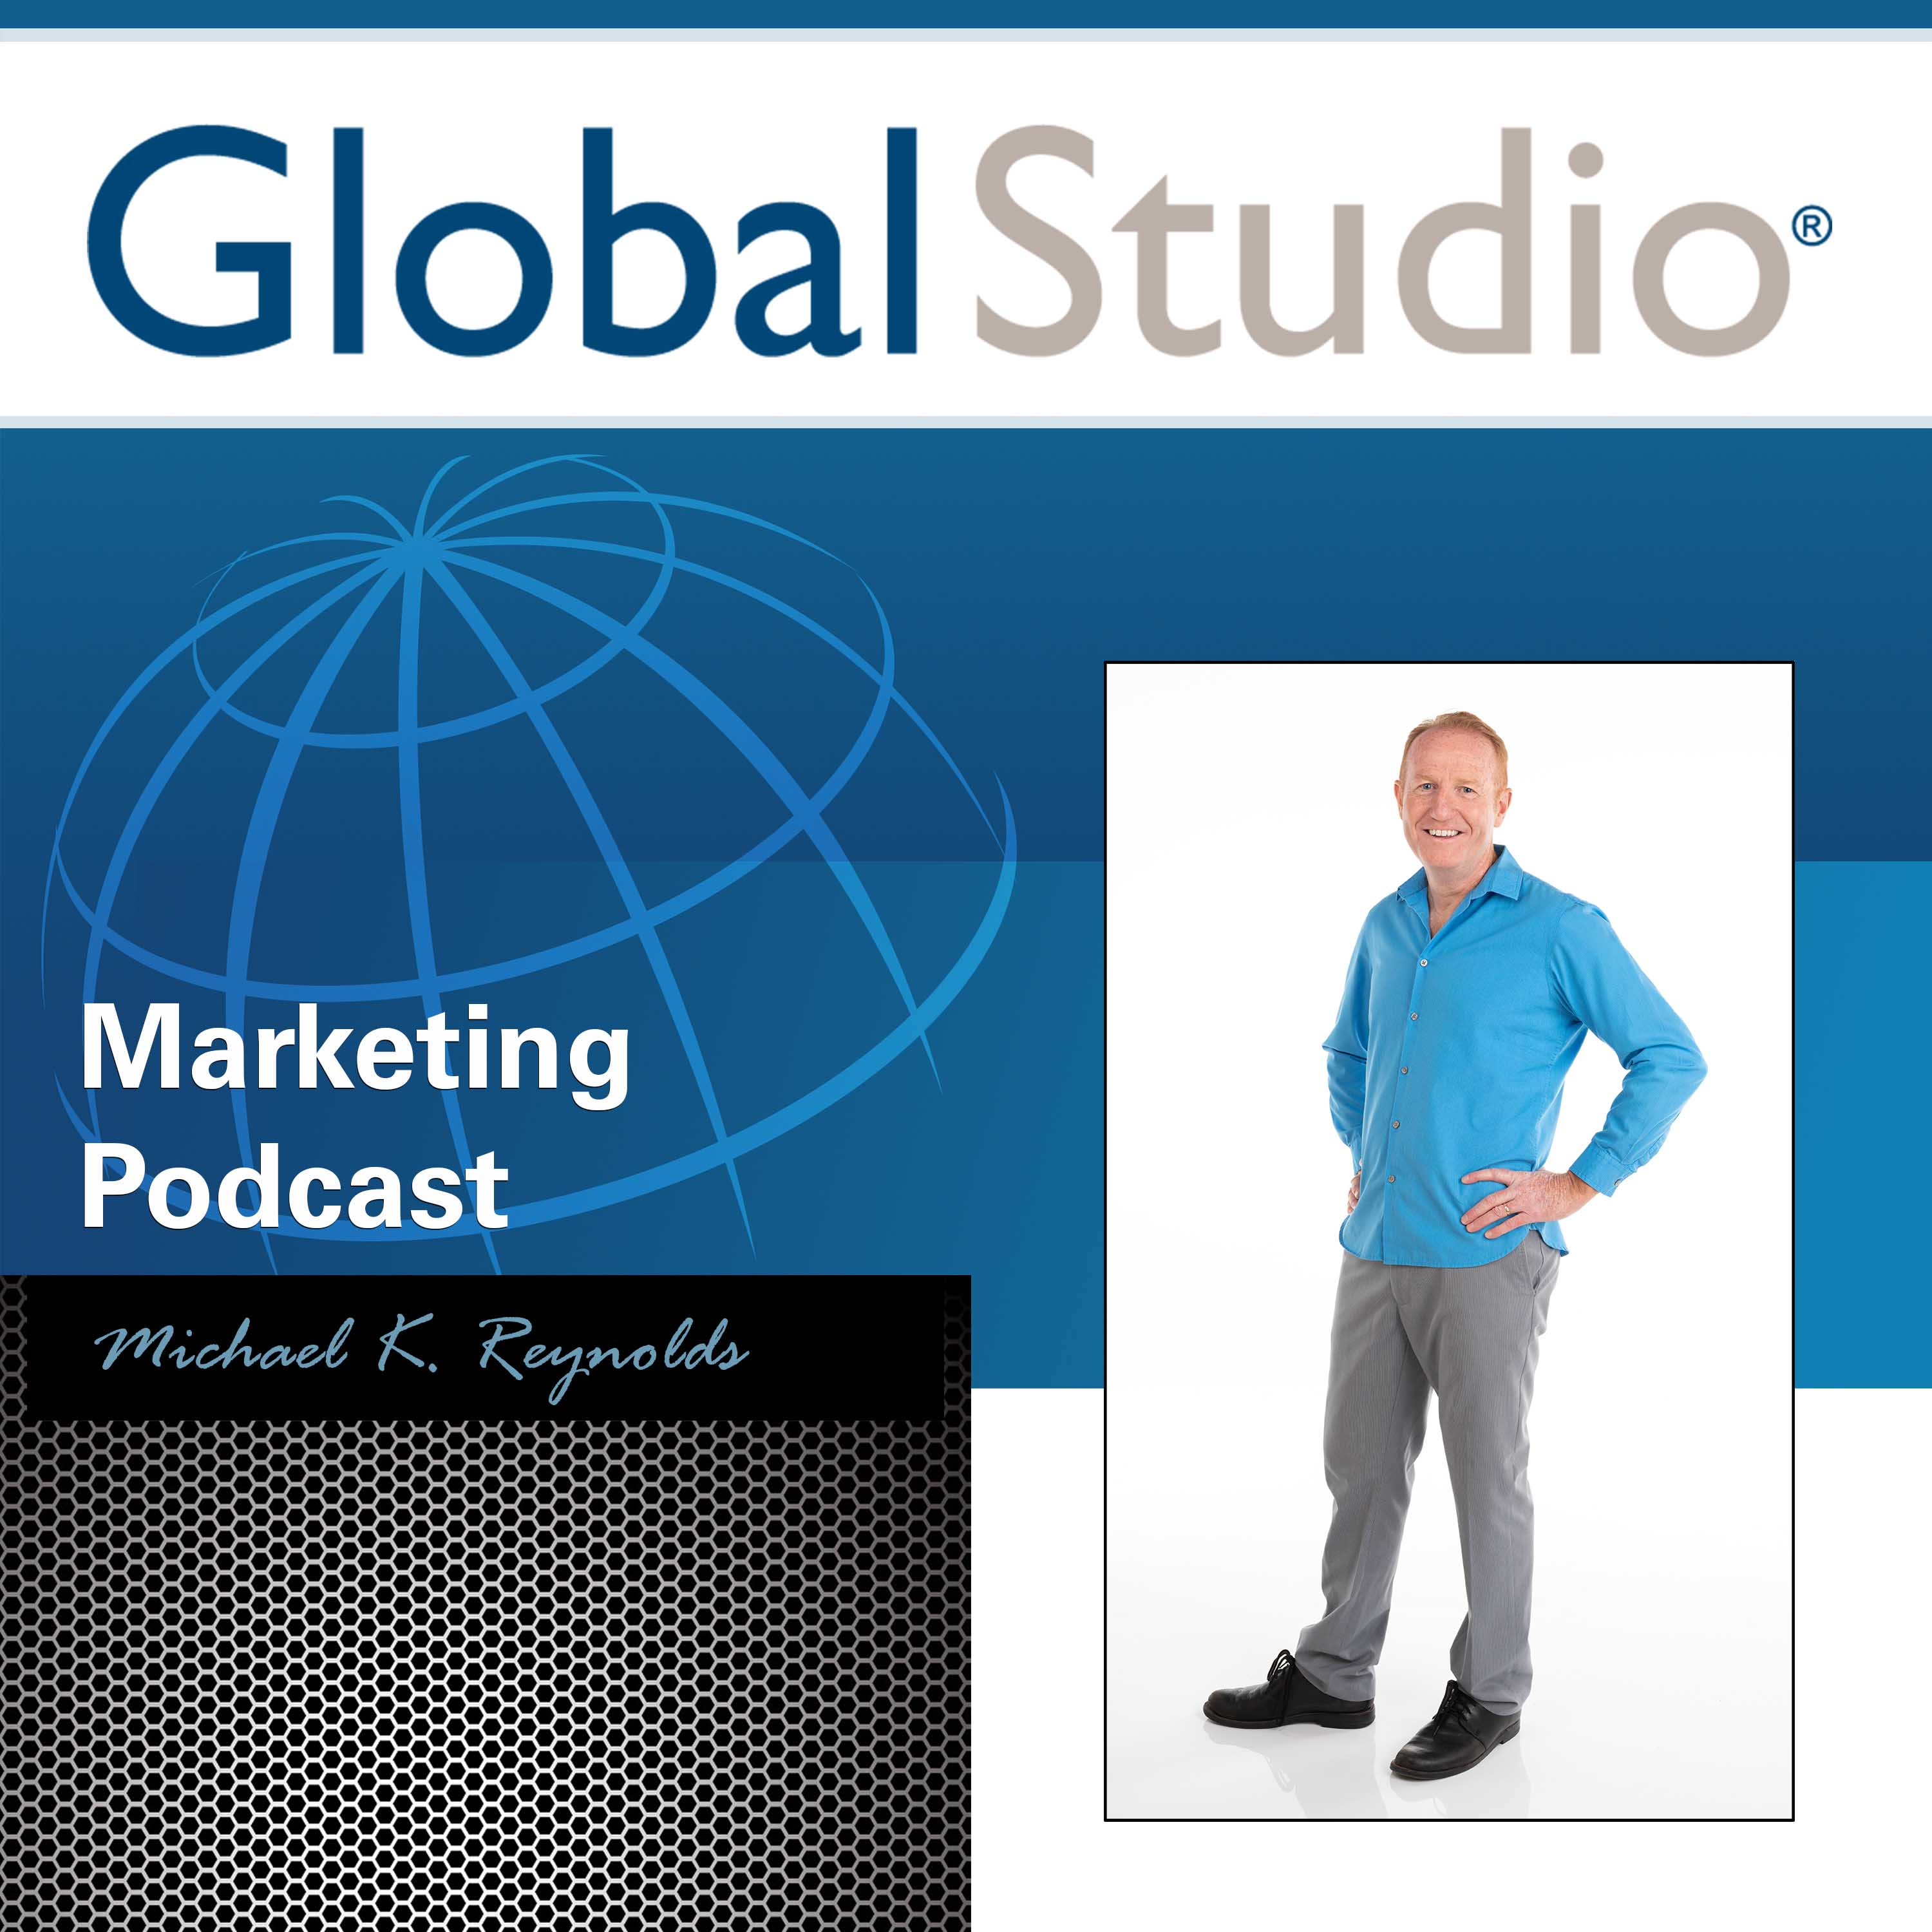 Global Studio Marketing Podcast show art